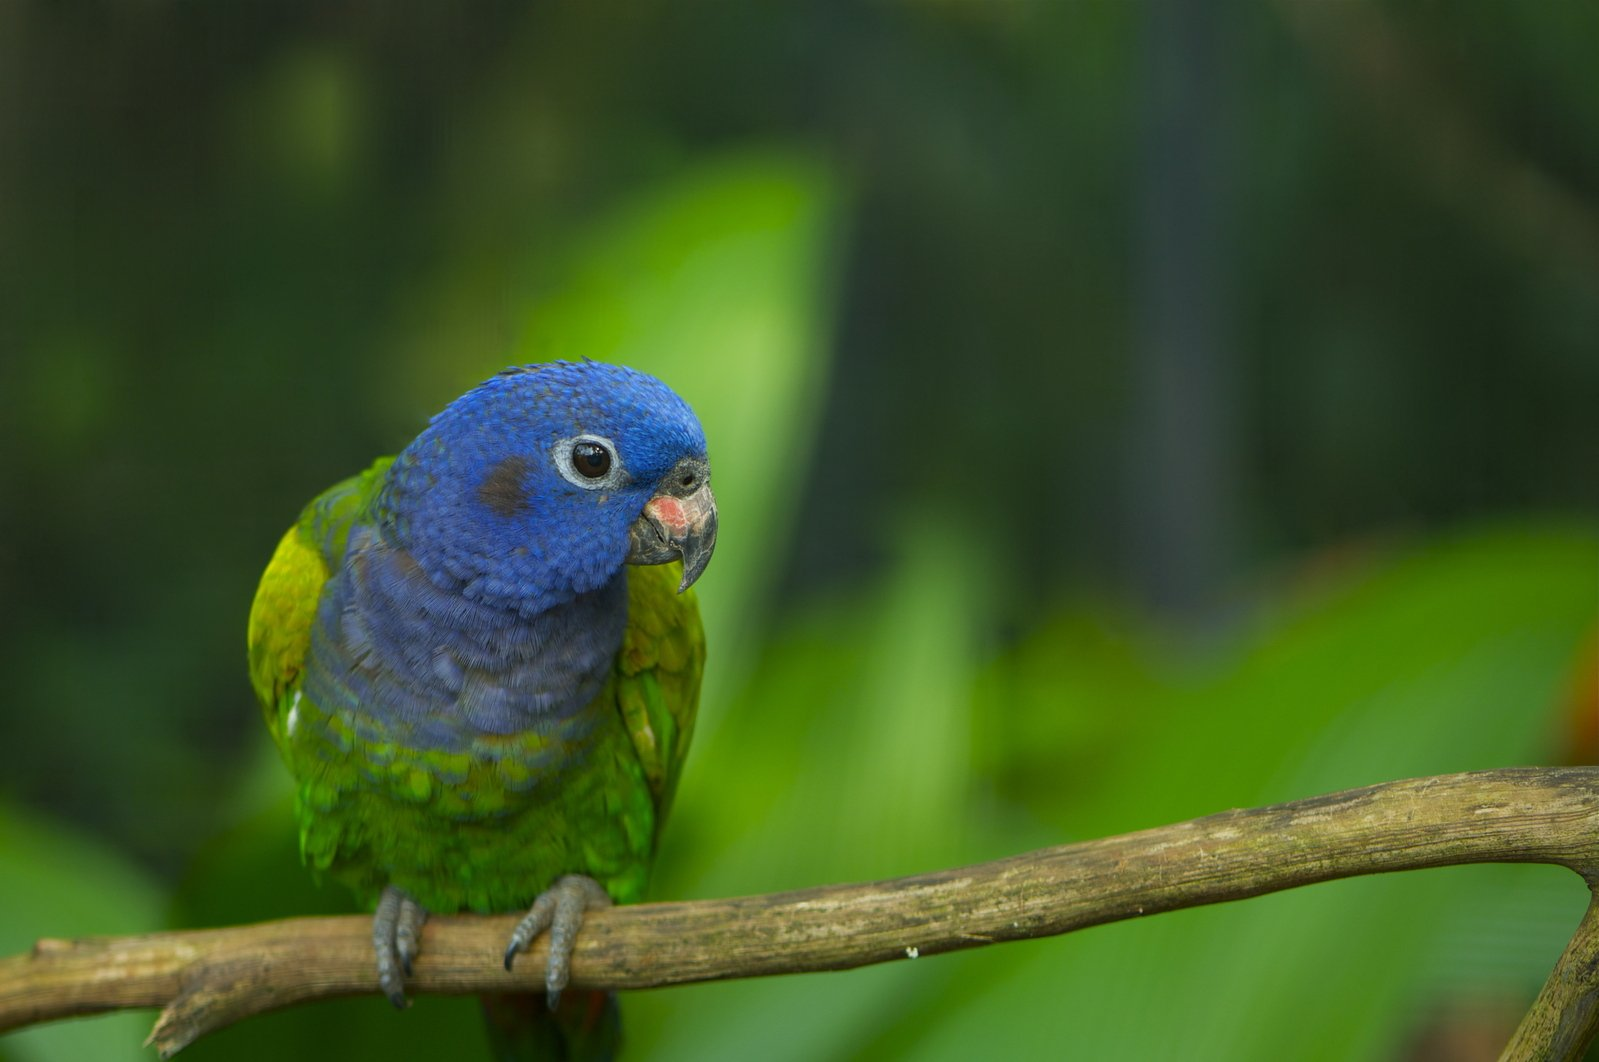 parrots in the rainforest